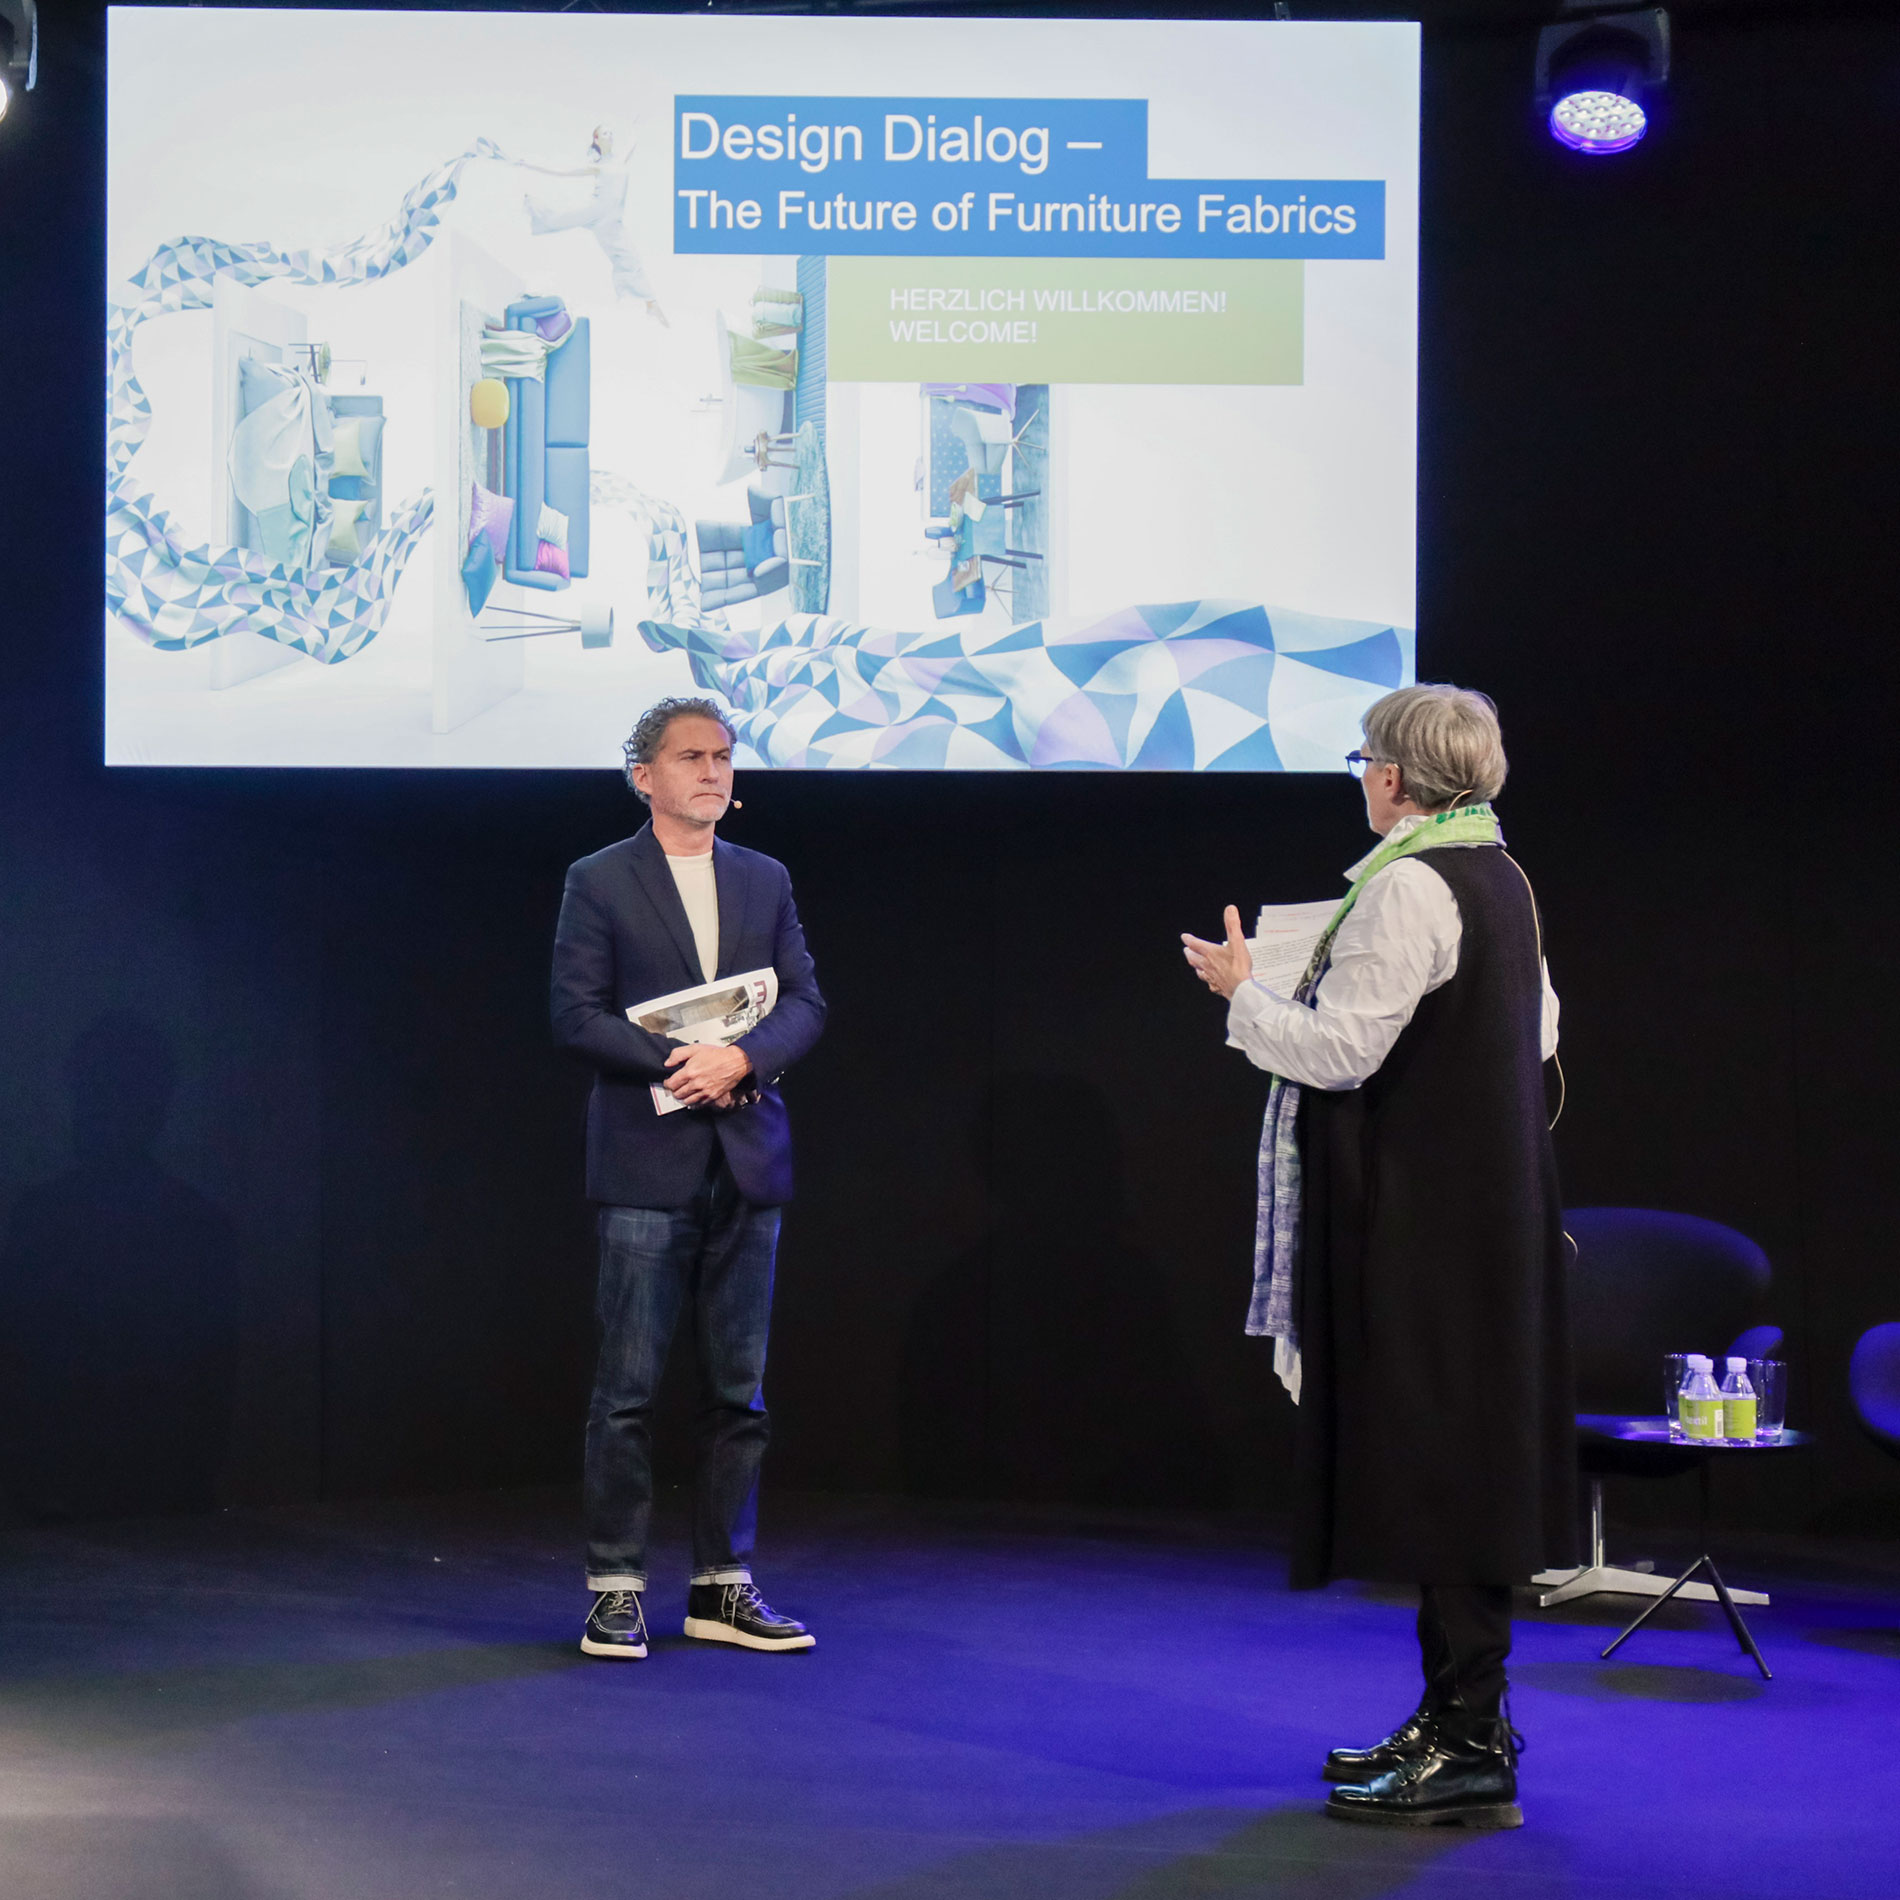 Design Dialog – The Future of Furniture Fabrics during the last Heimtextil